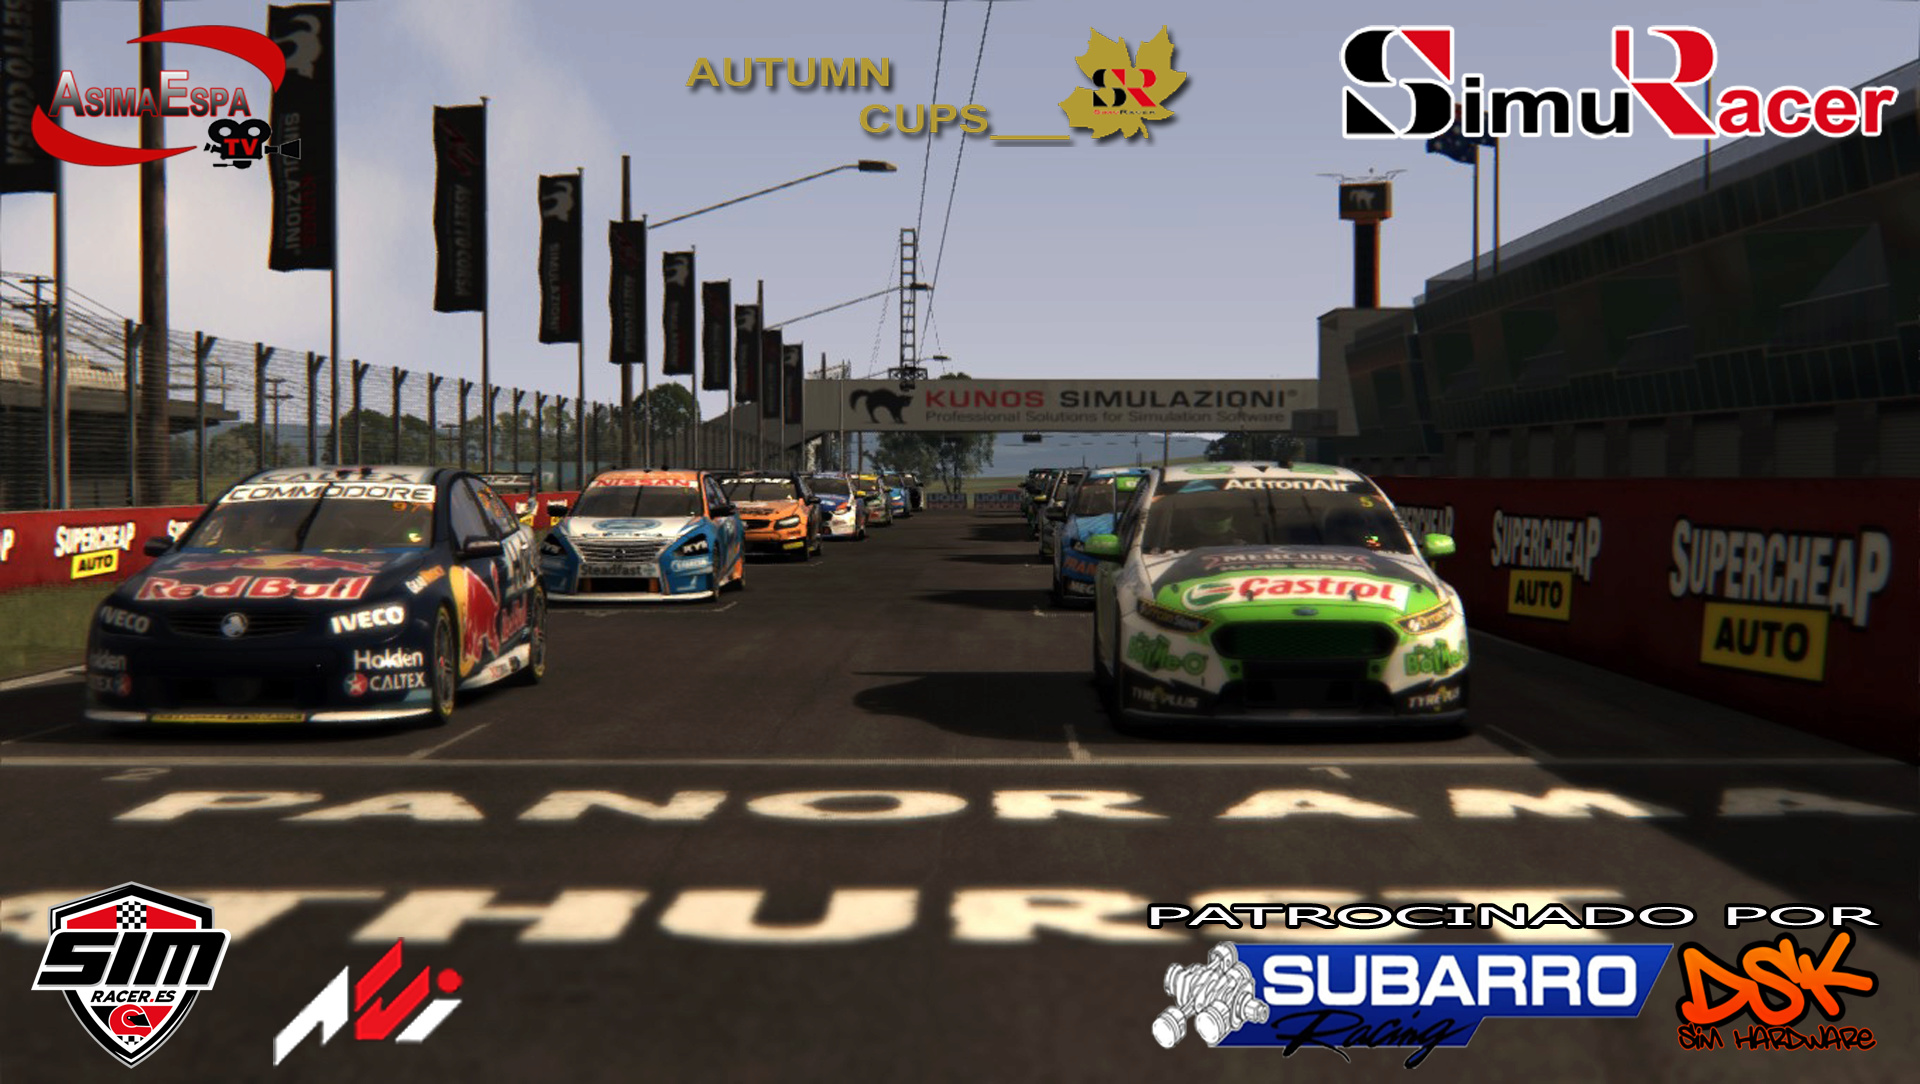 AUTUMN CUPS - CAMPEONATO  SUPERCARS V8 - BATHURST 3 DE DICIEMBRE (FINAL) Cartel28